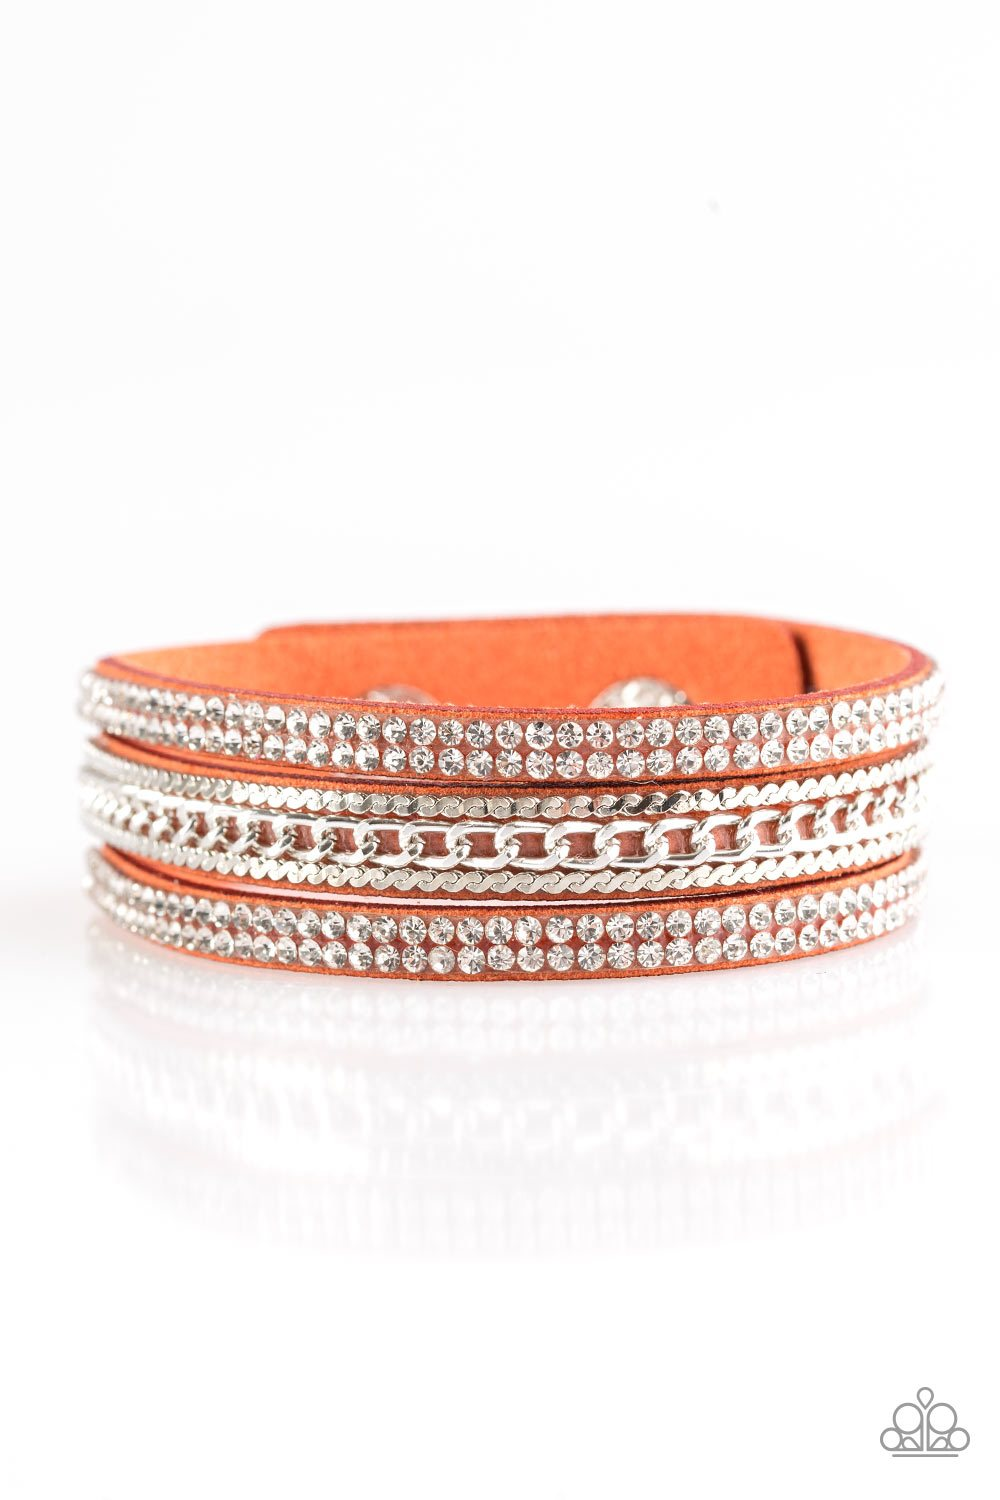 Paparazzi Unstoppable - Orange - White Rhinestones - Wrap / Snap Bracelet